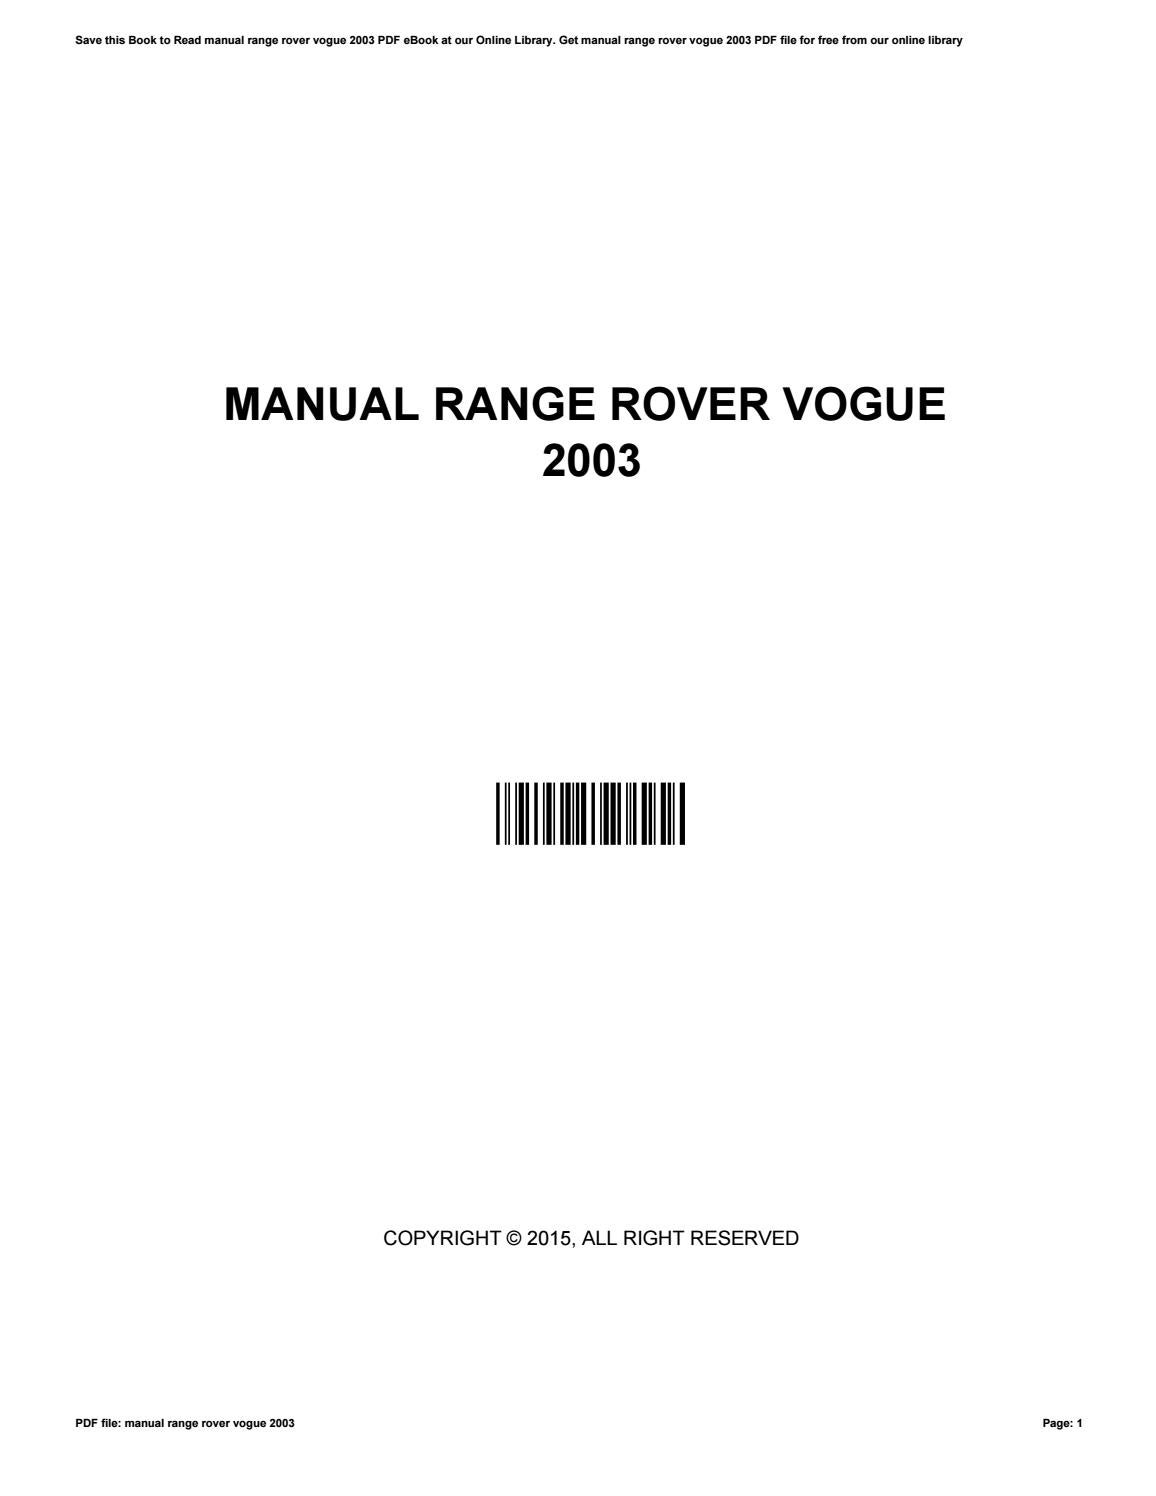 Range rover-hse-2005-owners-manual.